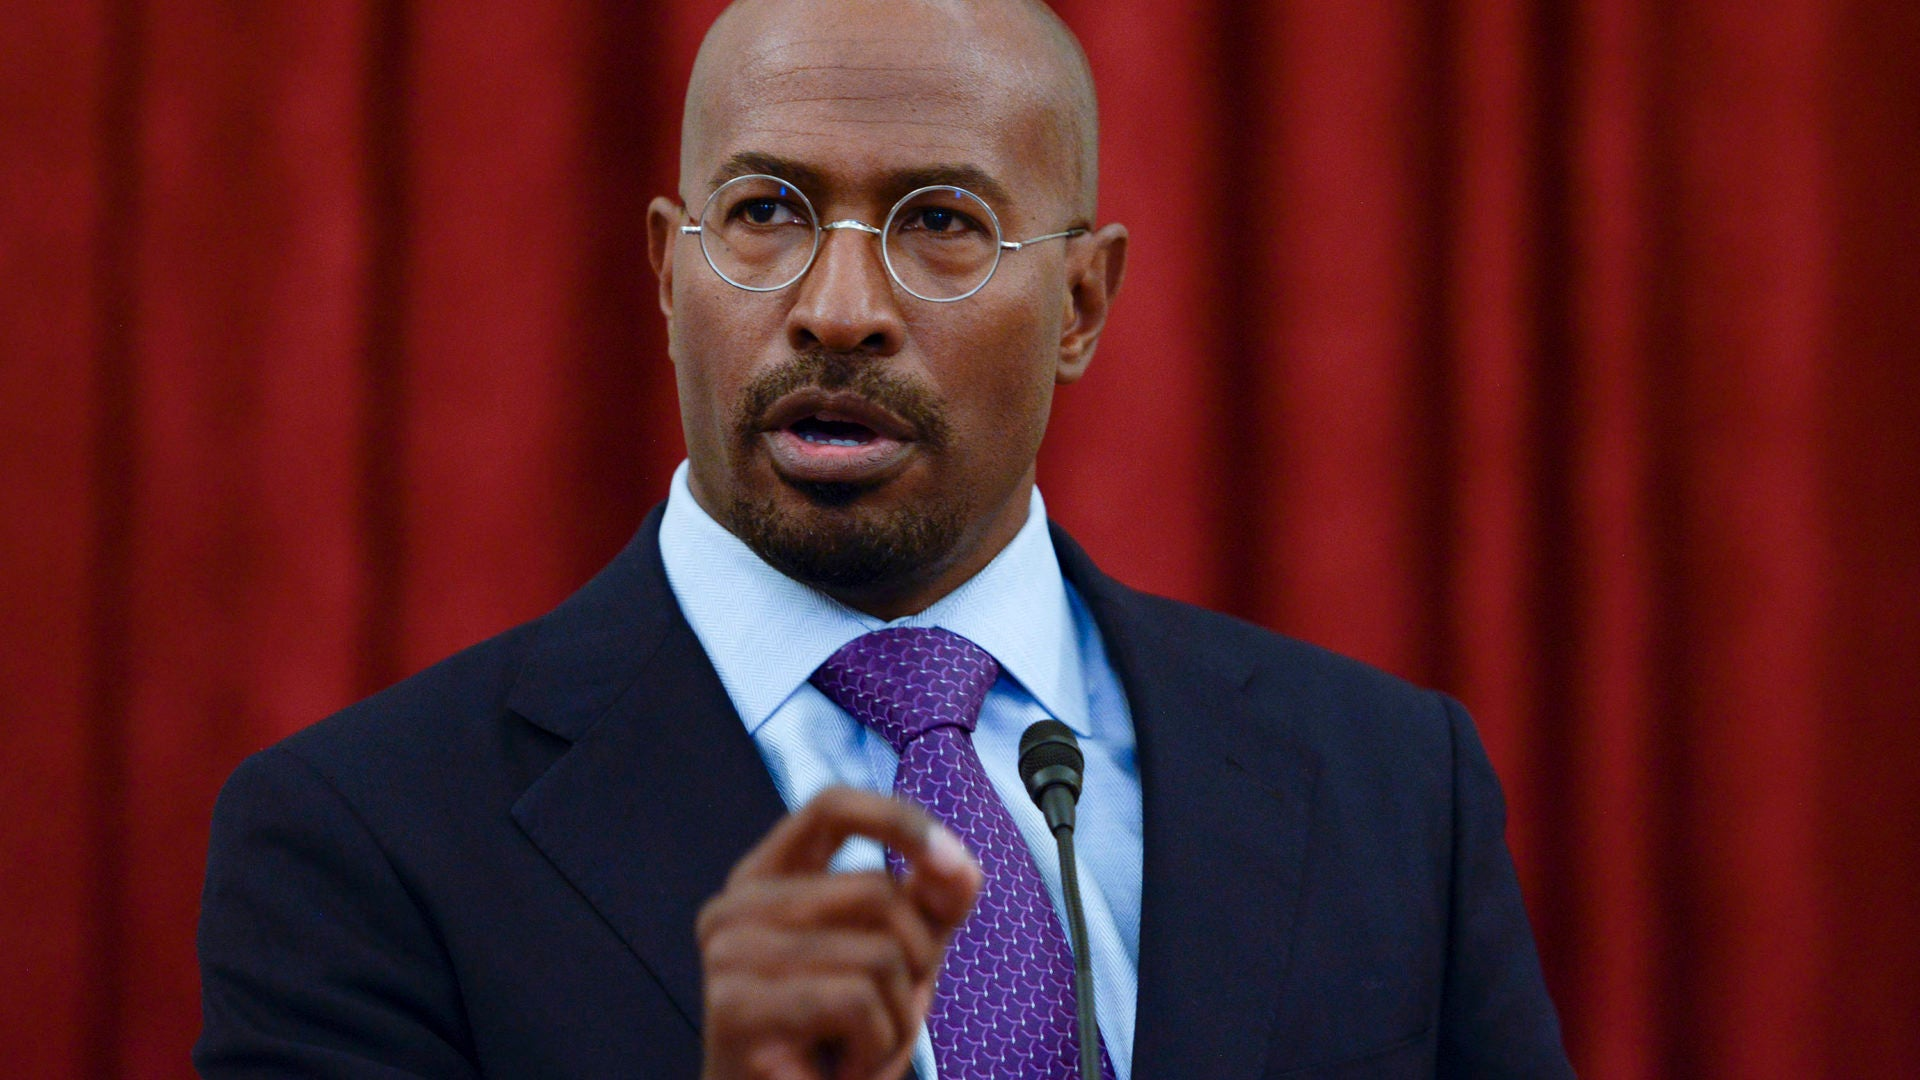 Van Jones Says Donald Trump Is On His Way To Being The 'Uniter-in-Chief'